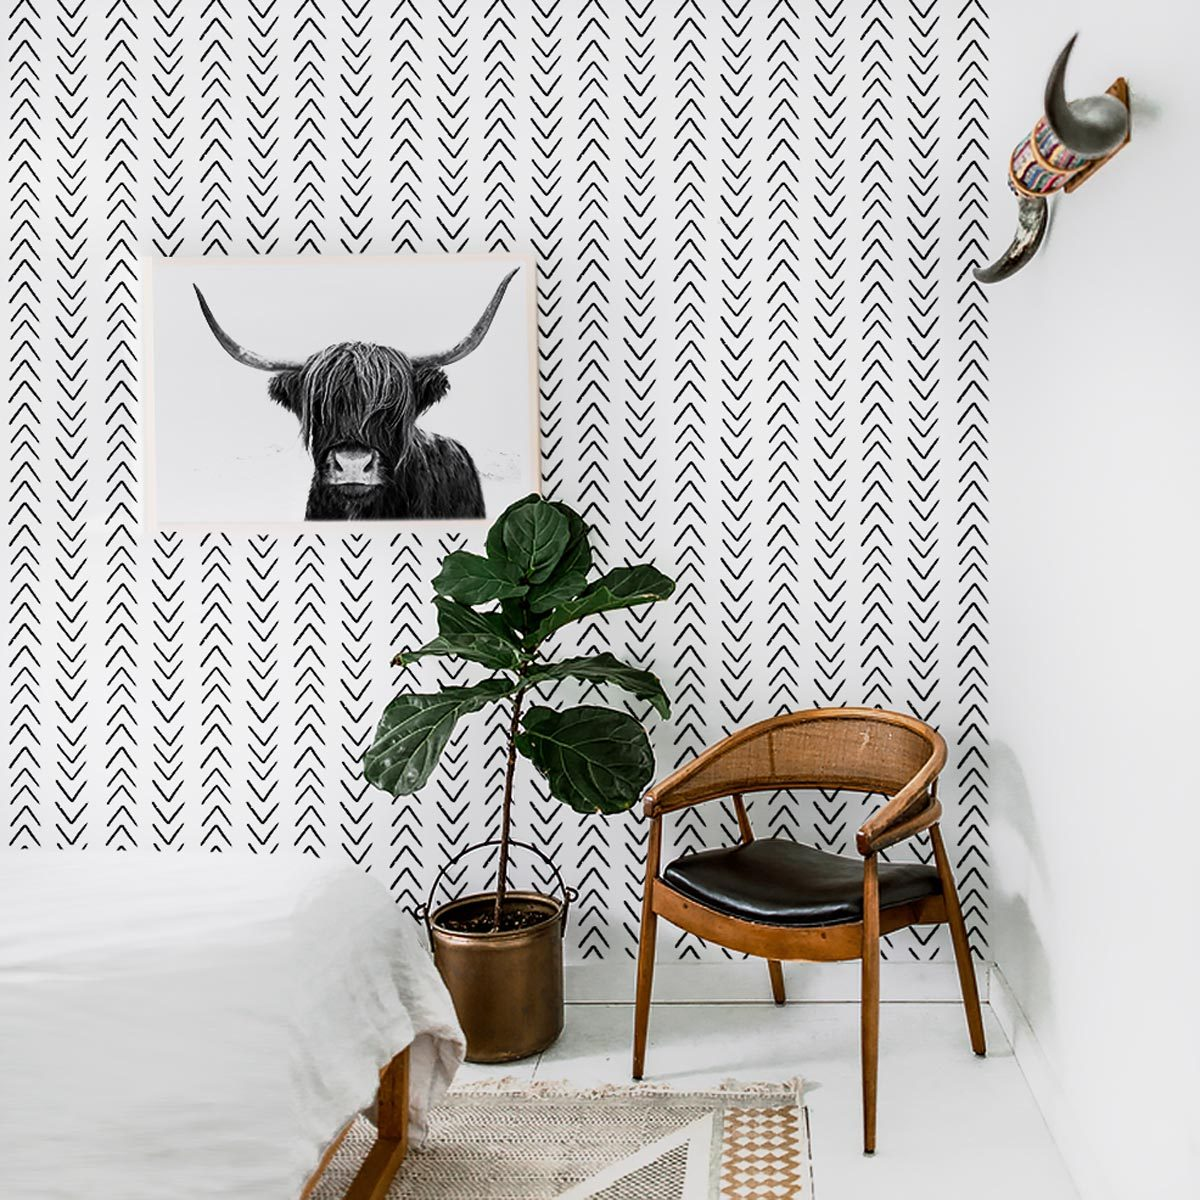 Removable-wallpaper-scandi-boho_1512x.jpg